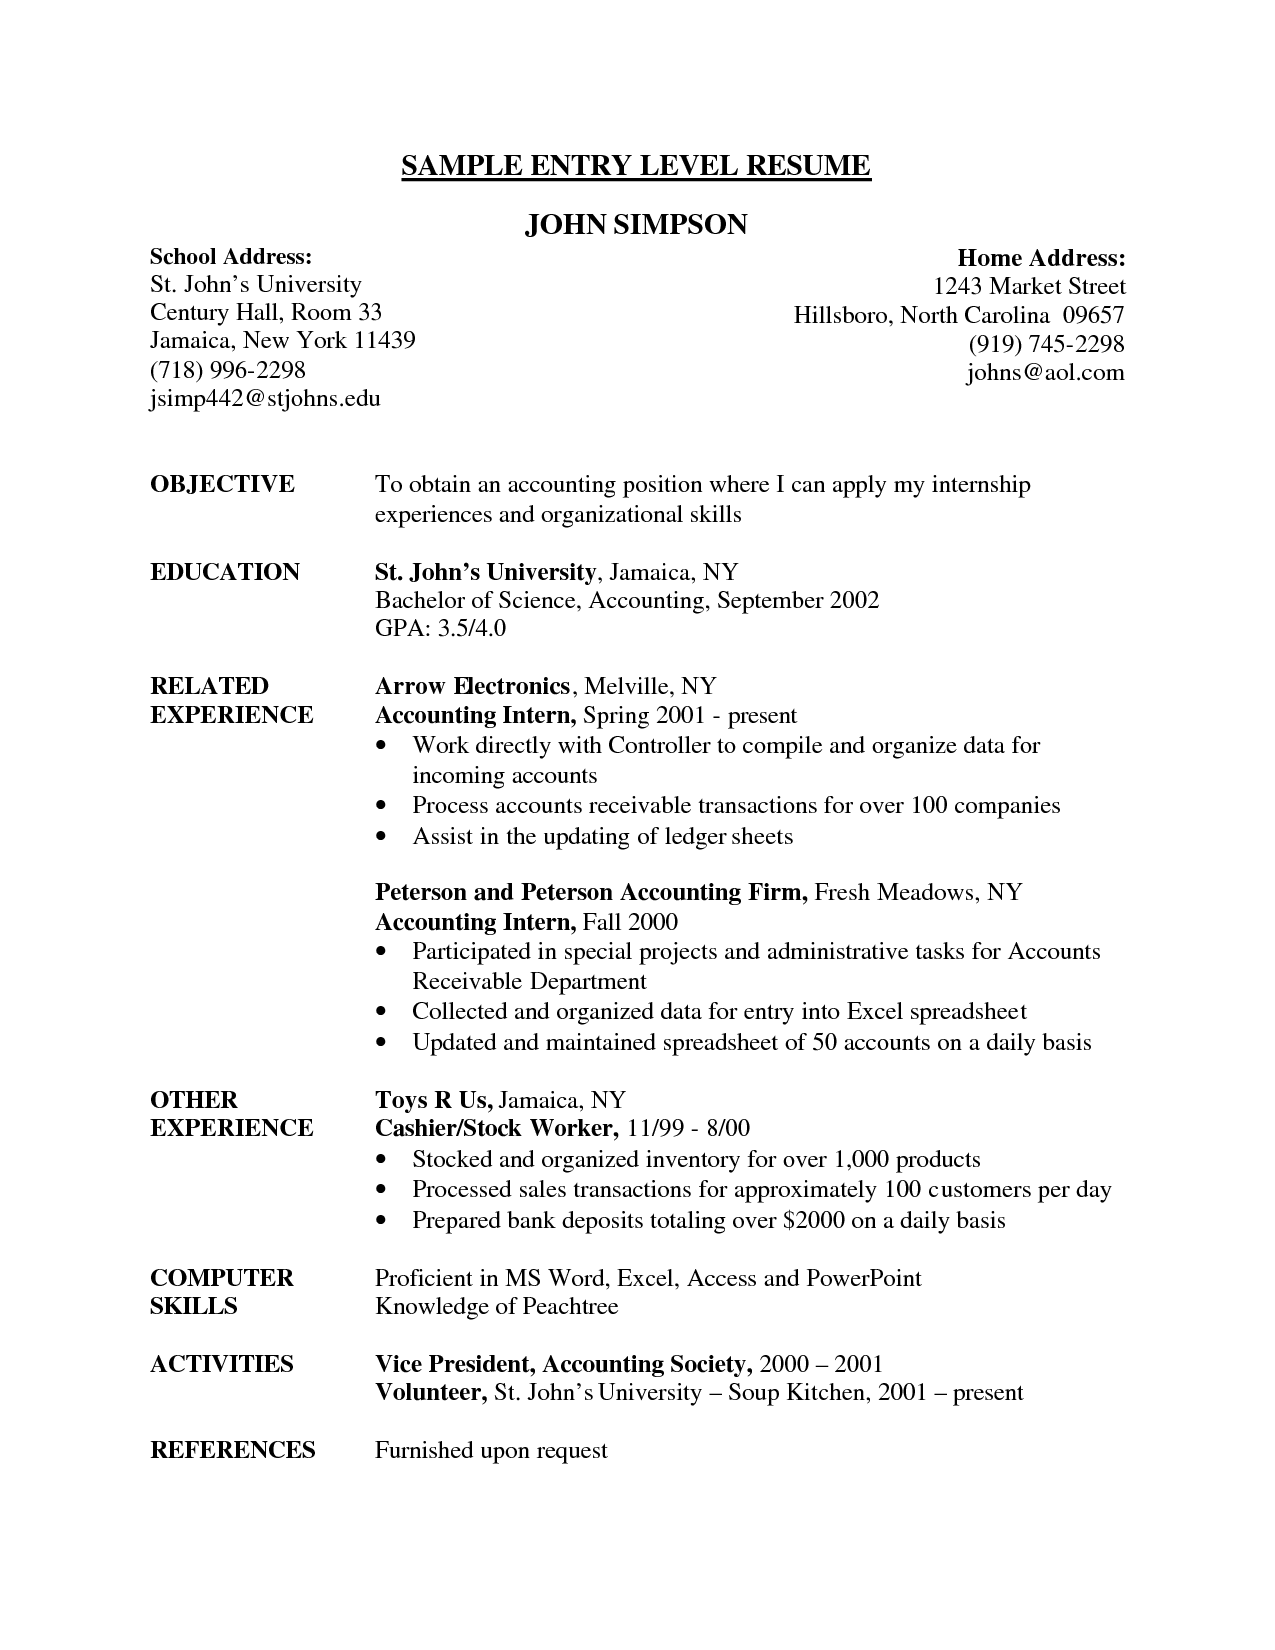 Sample Resume Summary Statement Example Of Resume Profile Entry Level  Httpwwwresumecareer